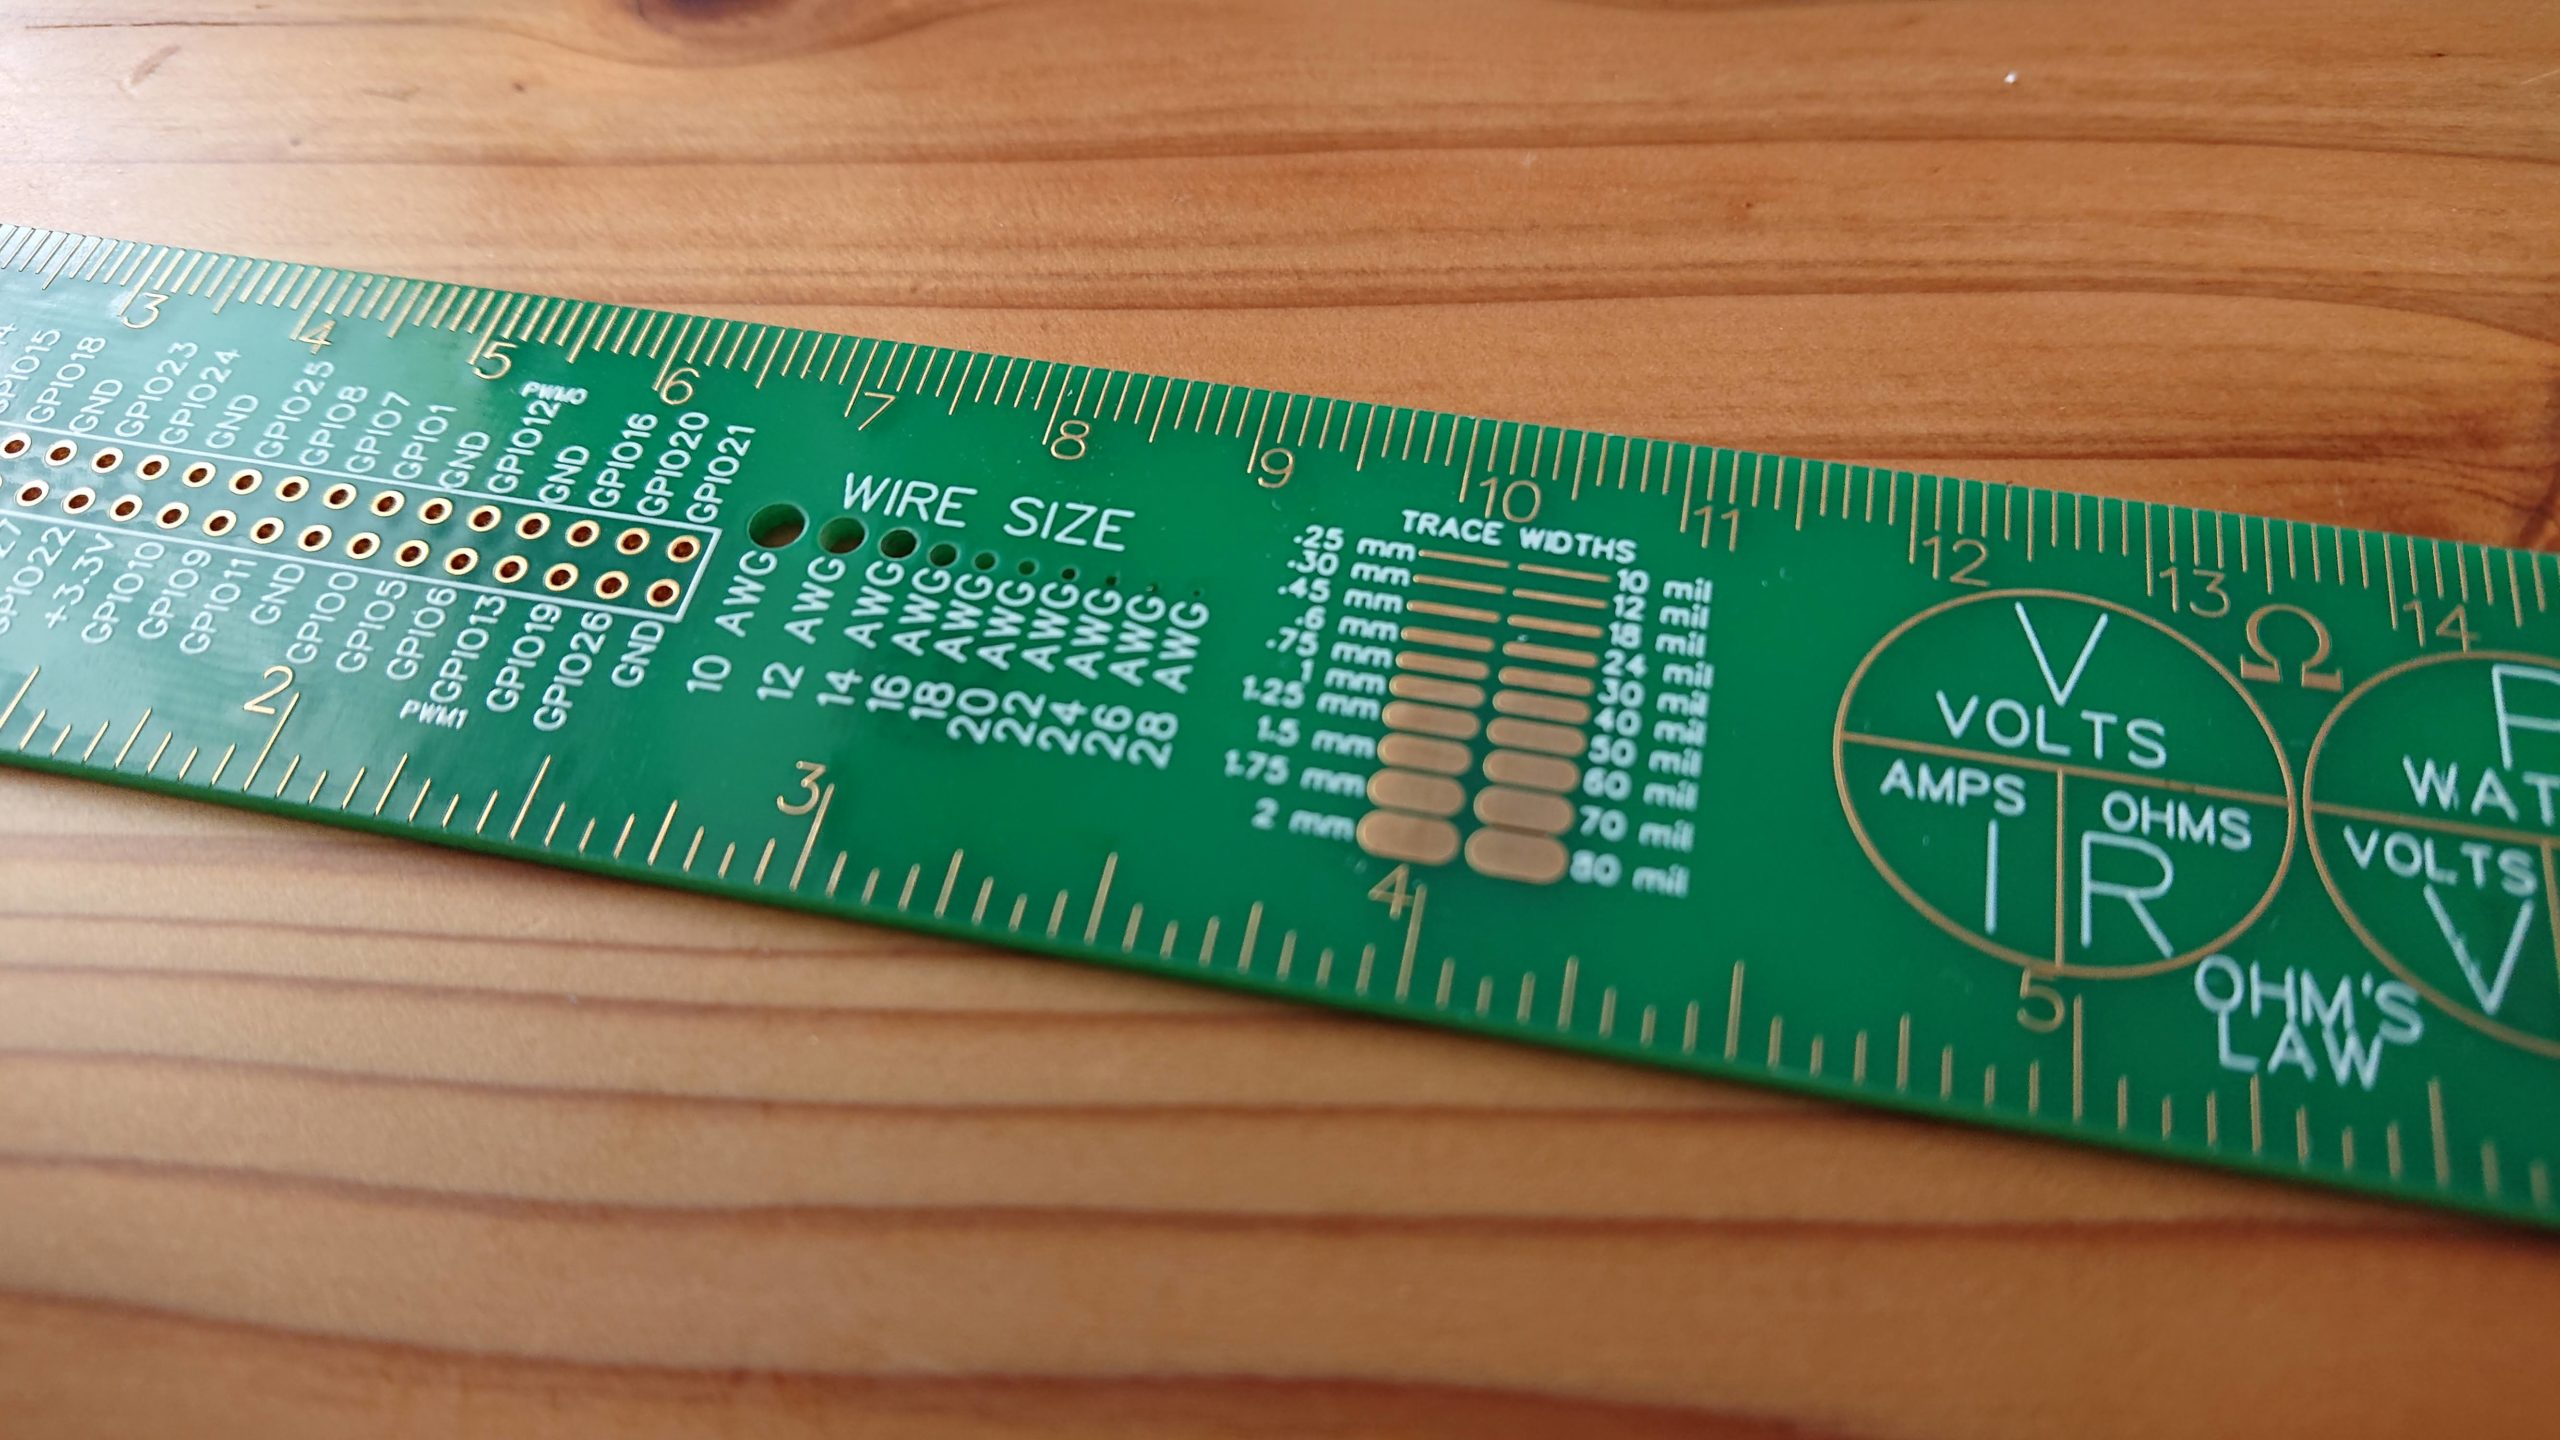 A Raspberry PI reference ruler:Raspberry Piものさし